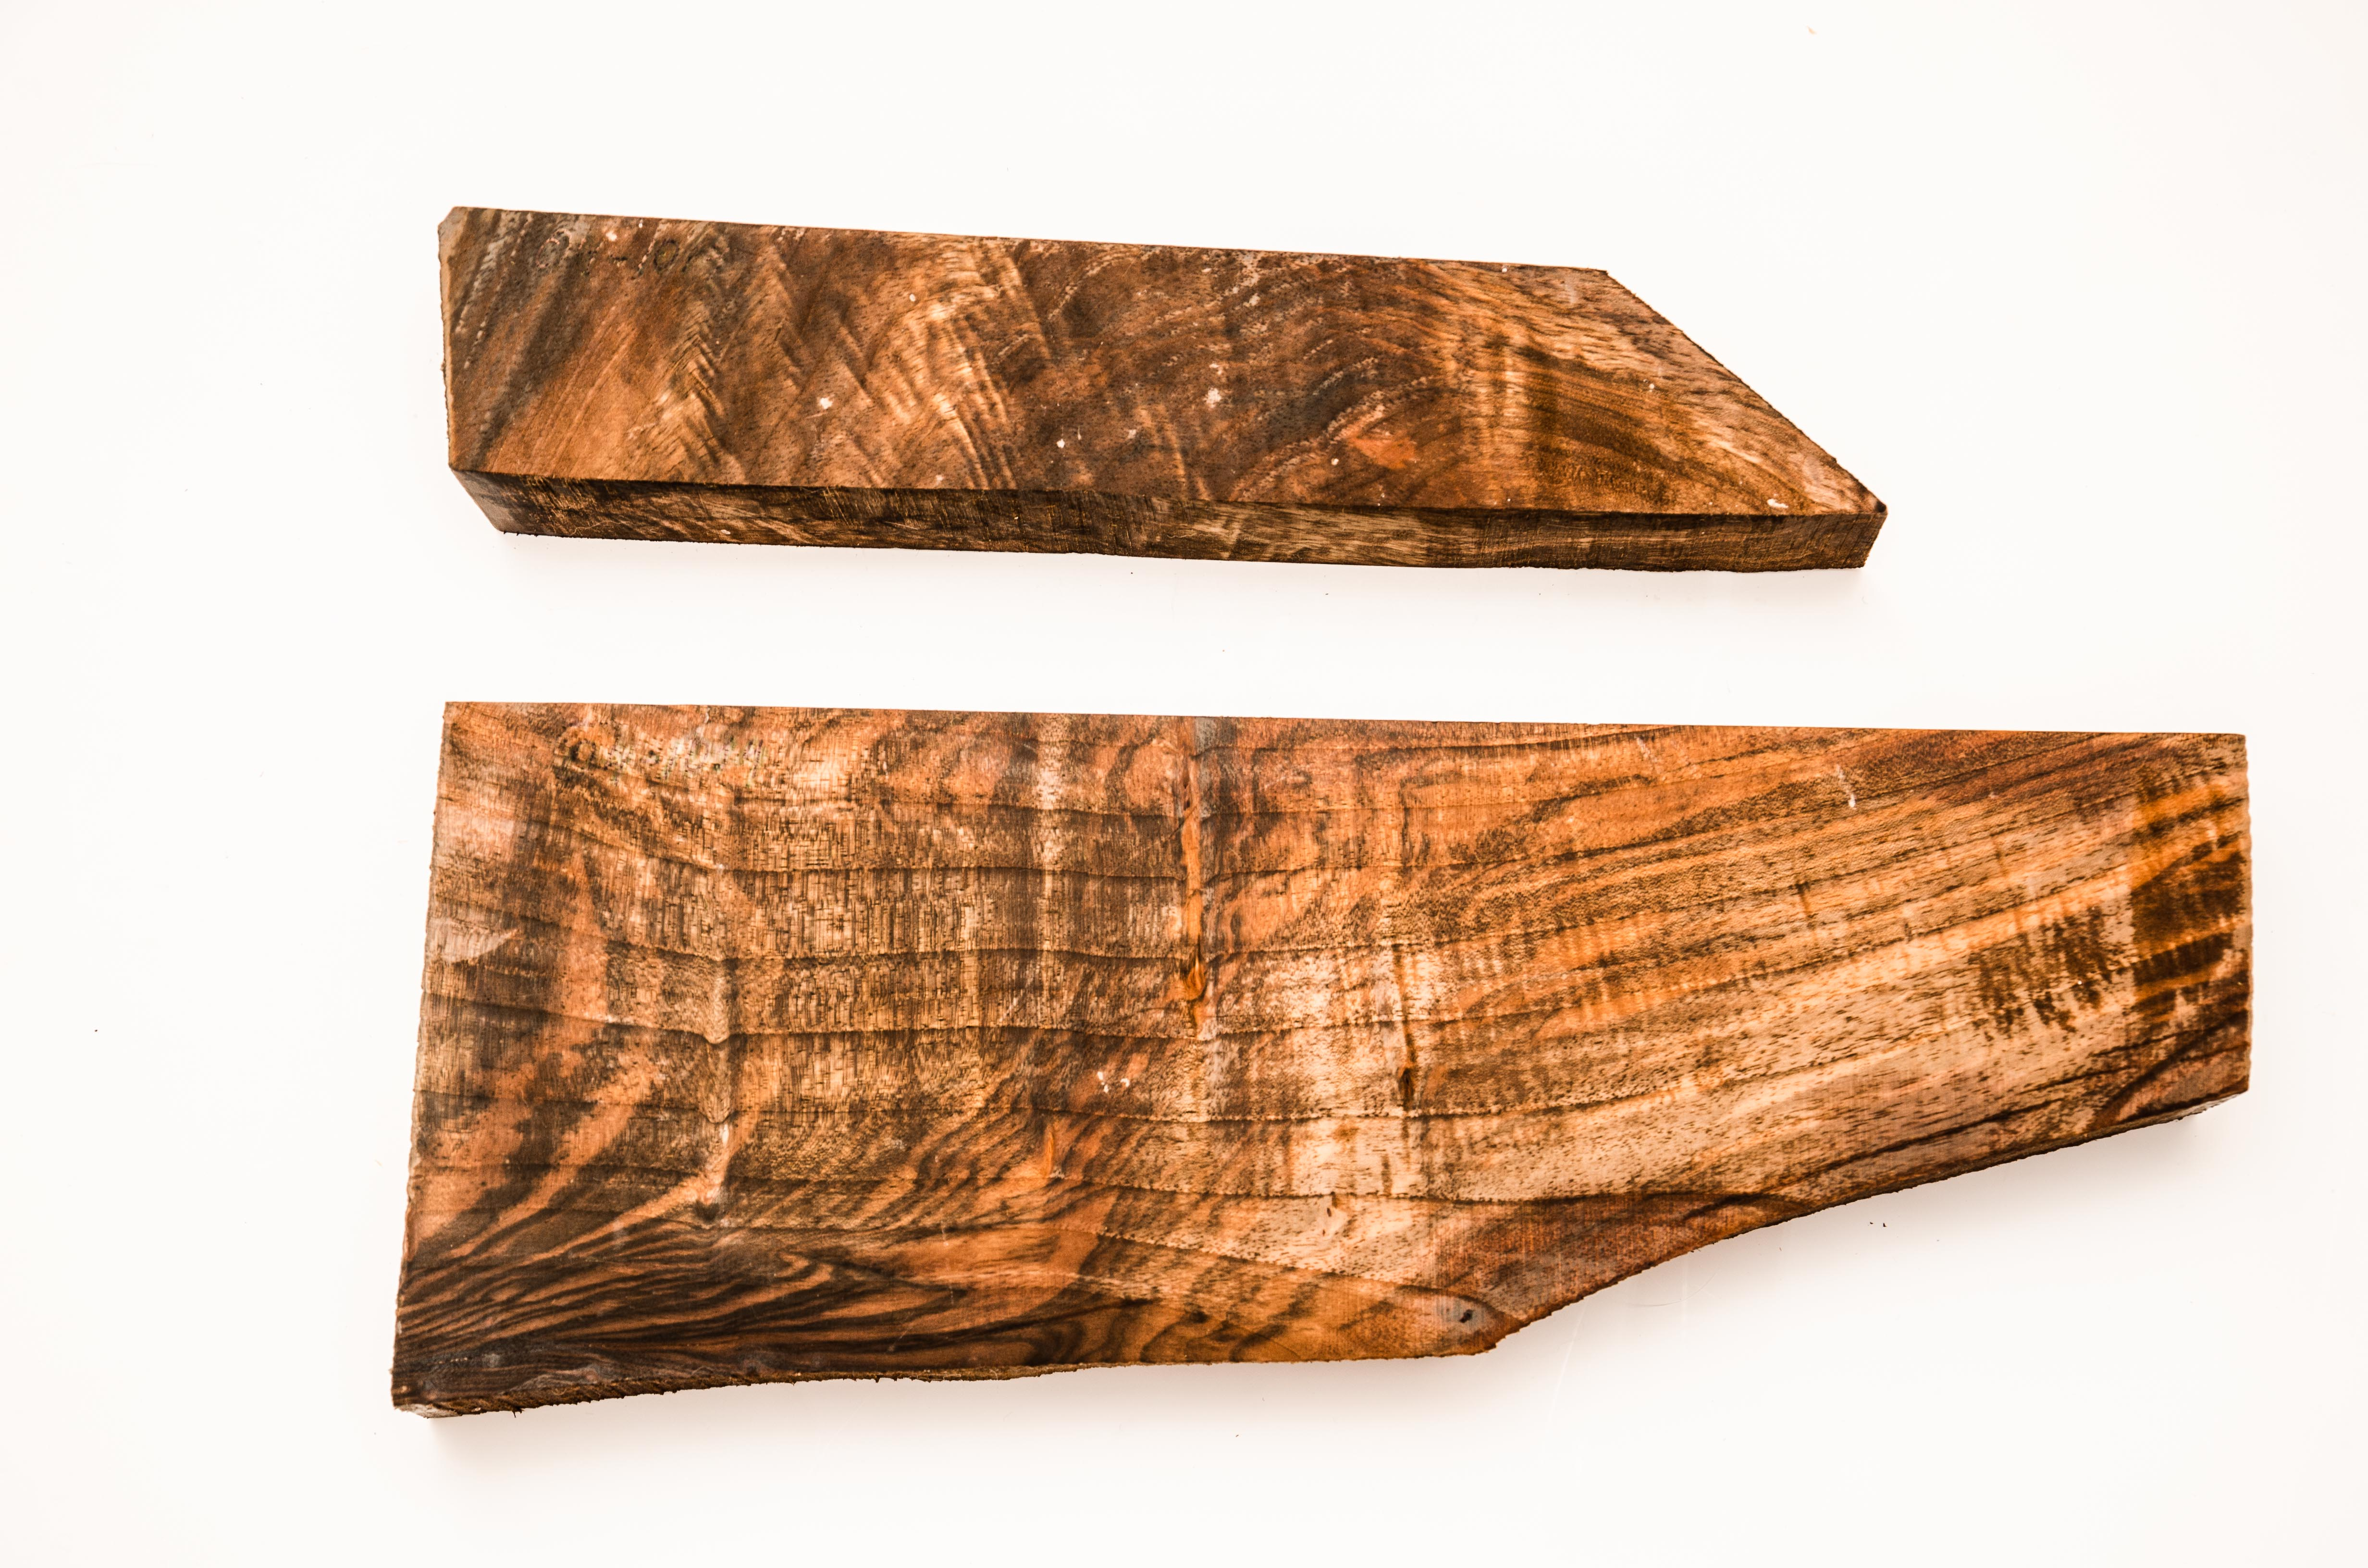 walnut_stock_blanks_for_guns_and_rifles-0373